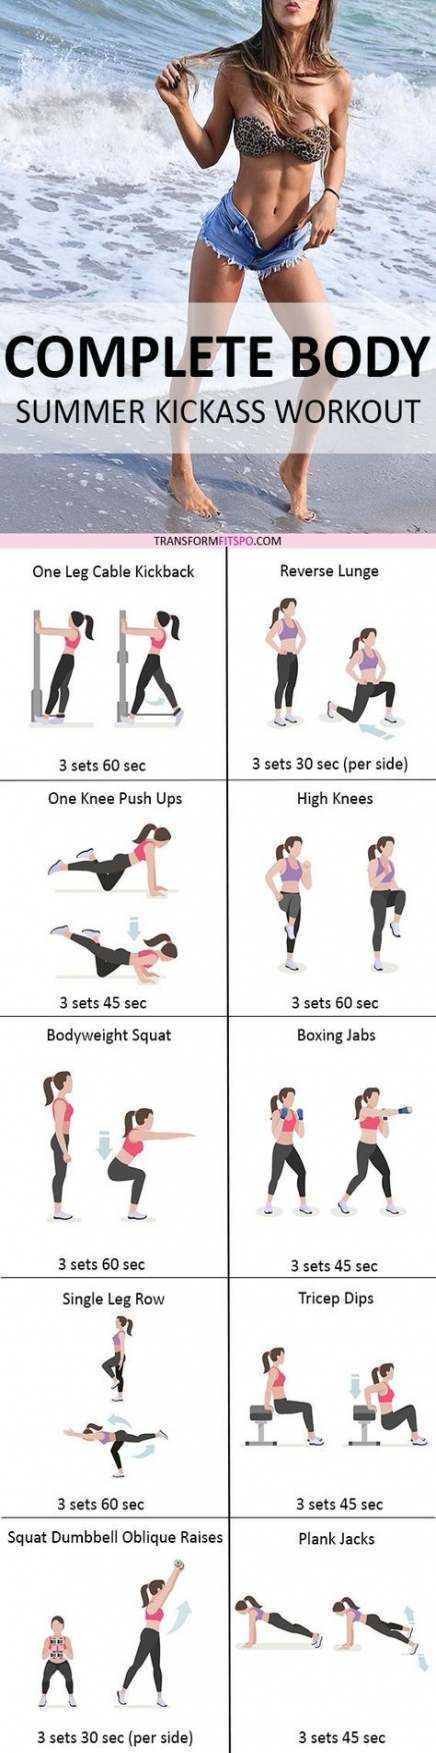 Fitness motivacin body men build muscle 30 Ideas #fitness